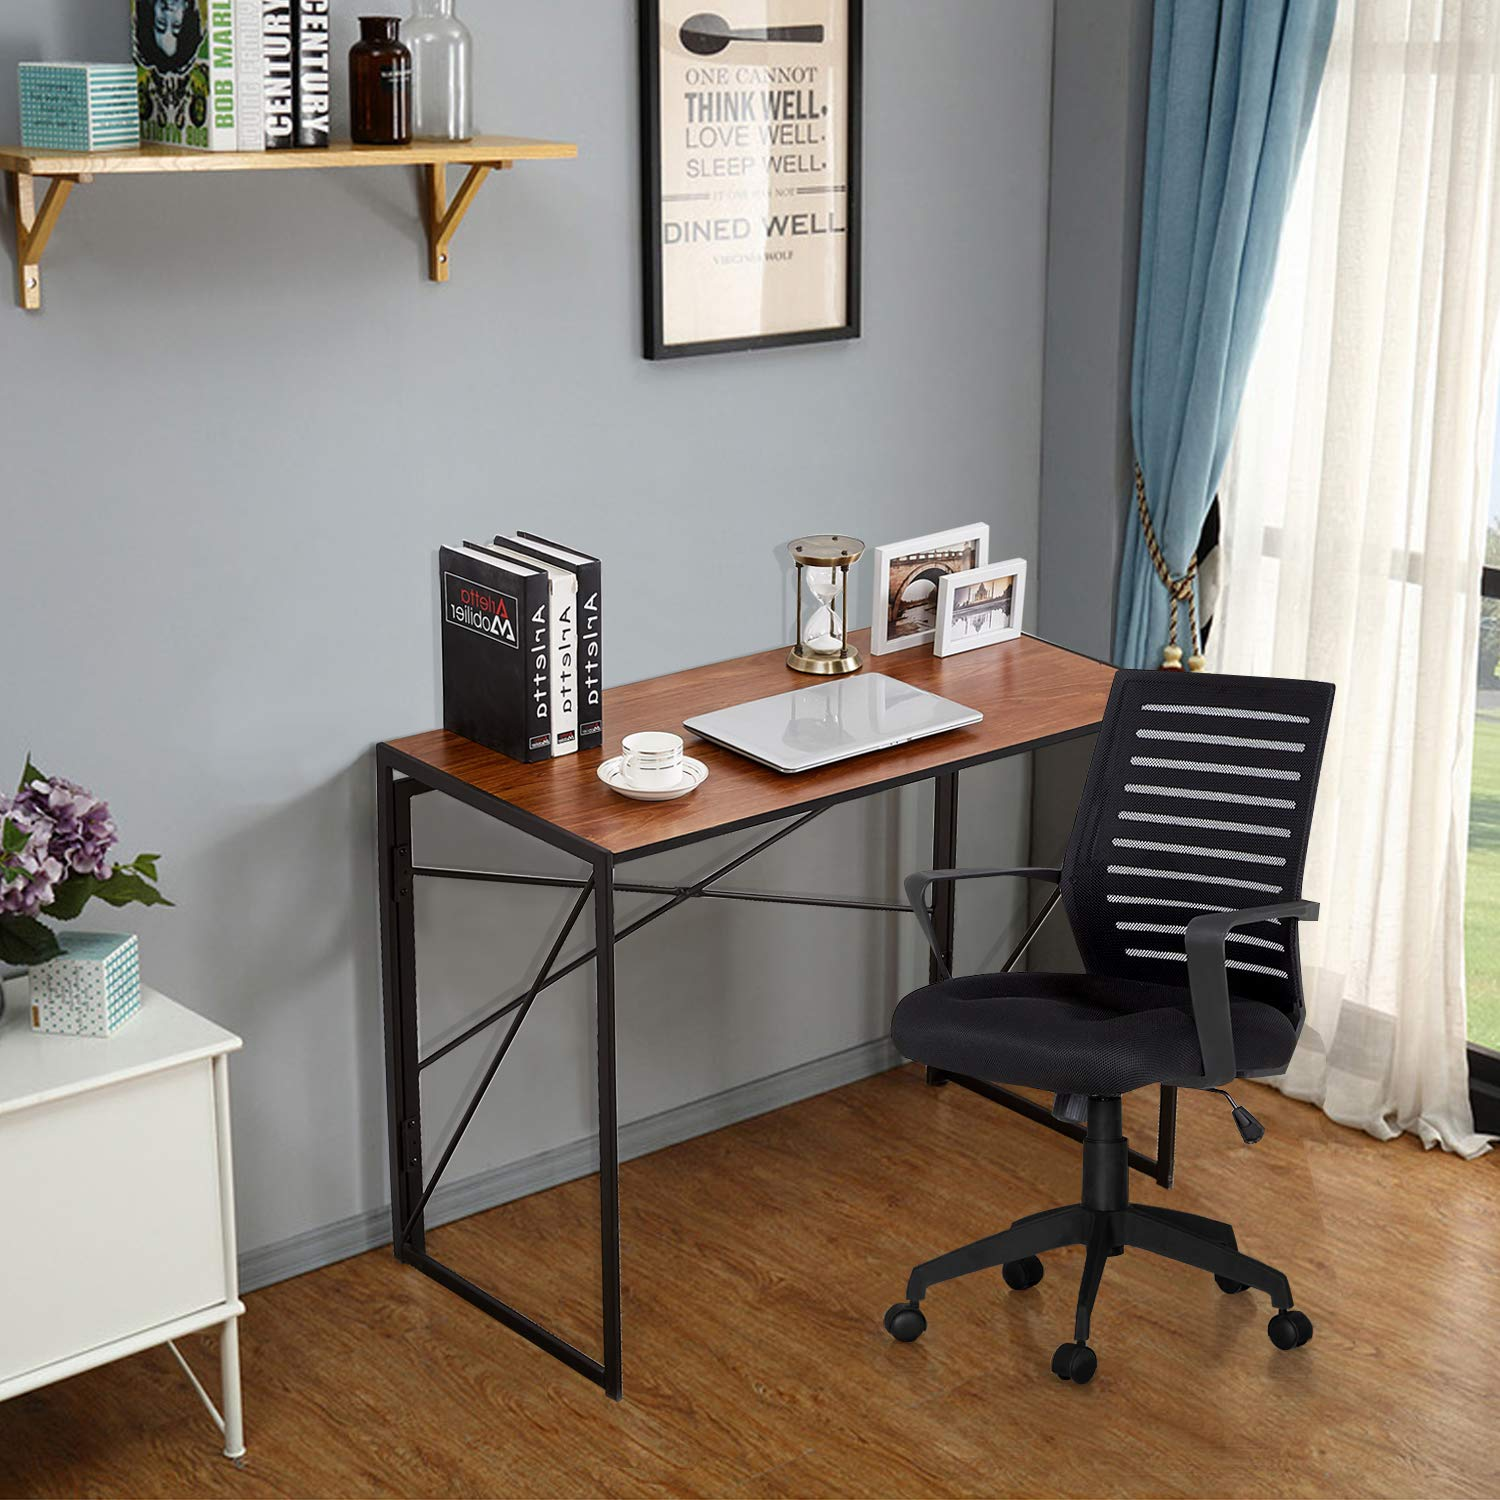 VECELO Writing Computer Folding Desk/Sturdy Steel Laptop Table for Home Office Work by VECELO (Image #4)